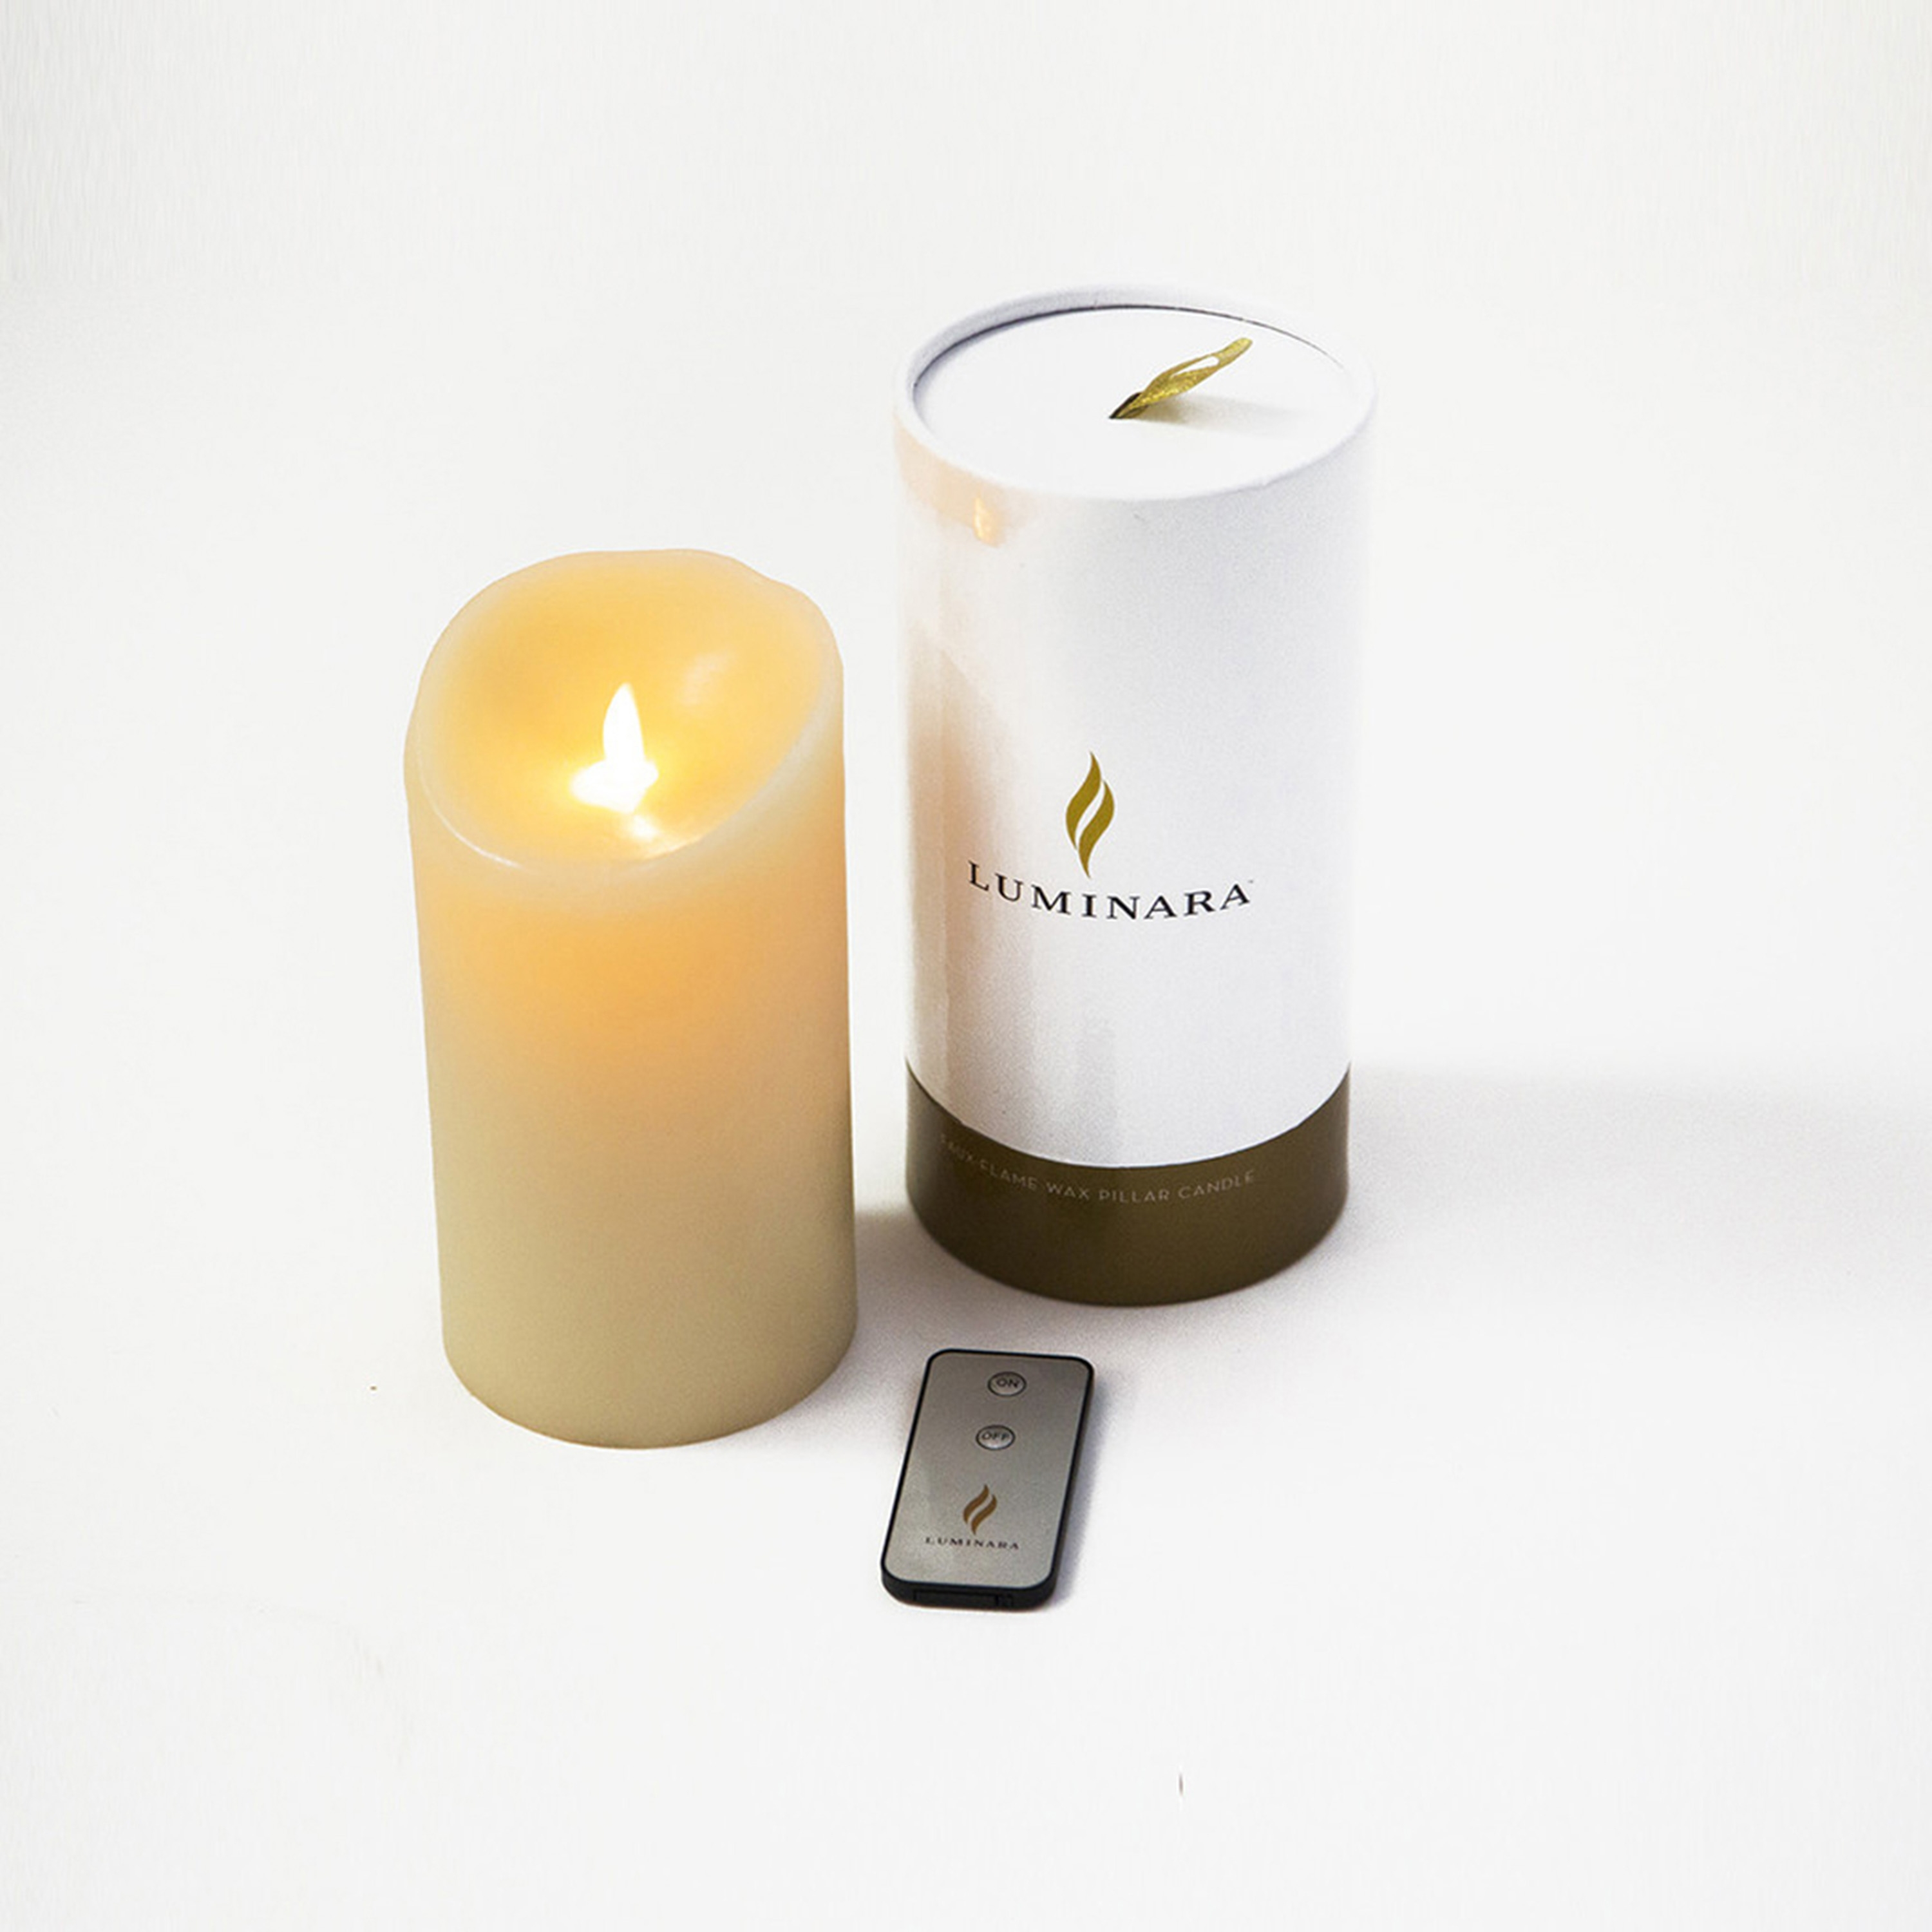 Flameless Luminara candles come with a handy remote control.